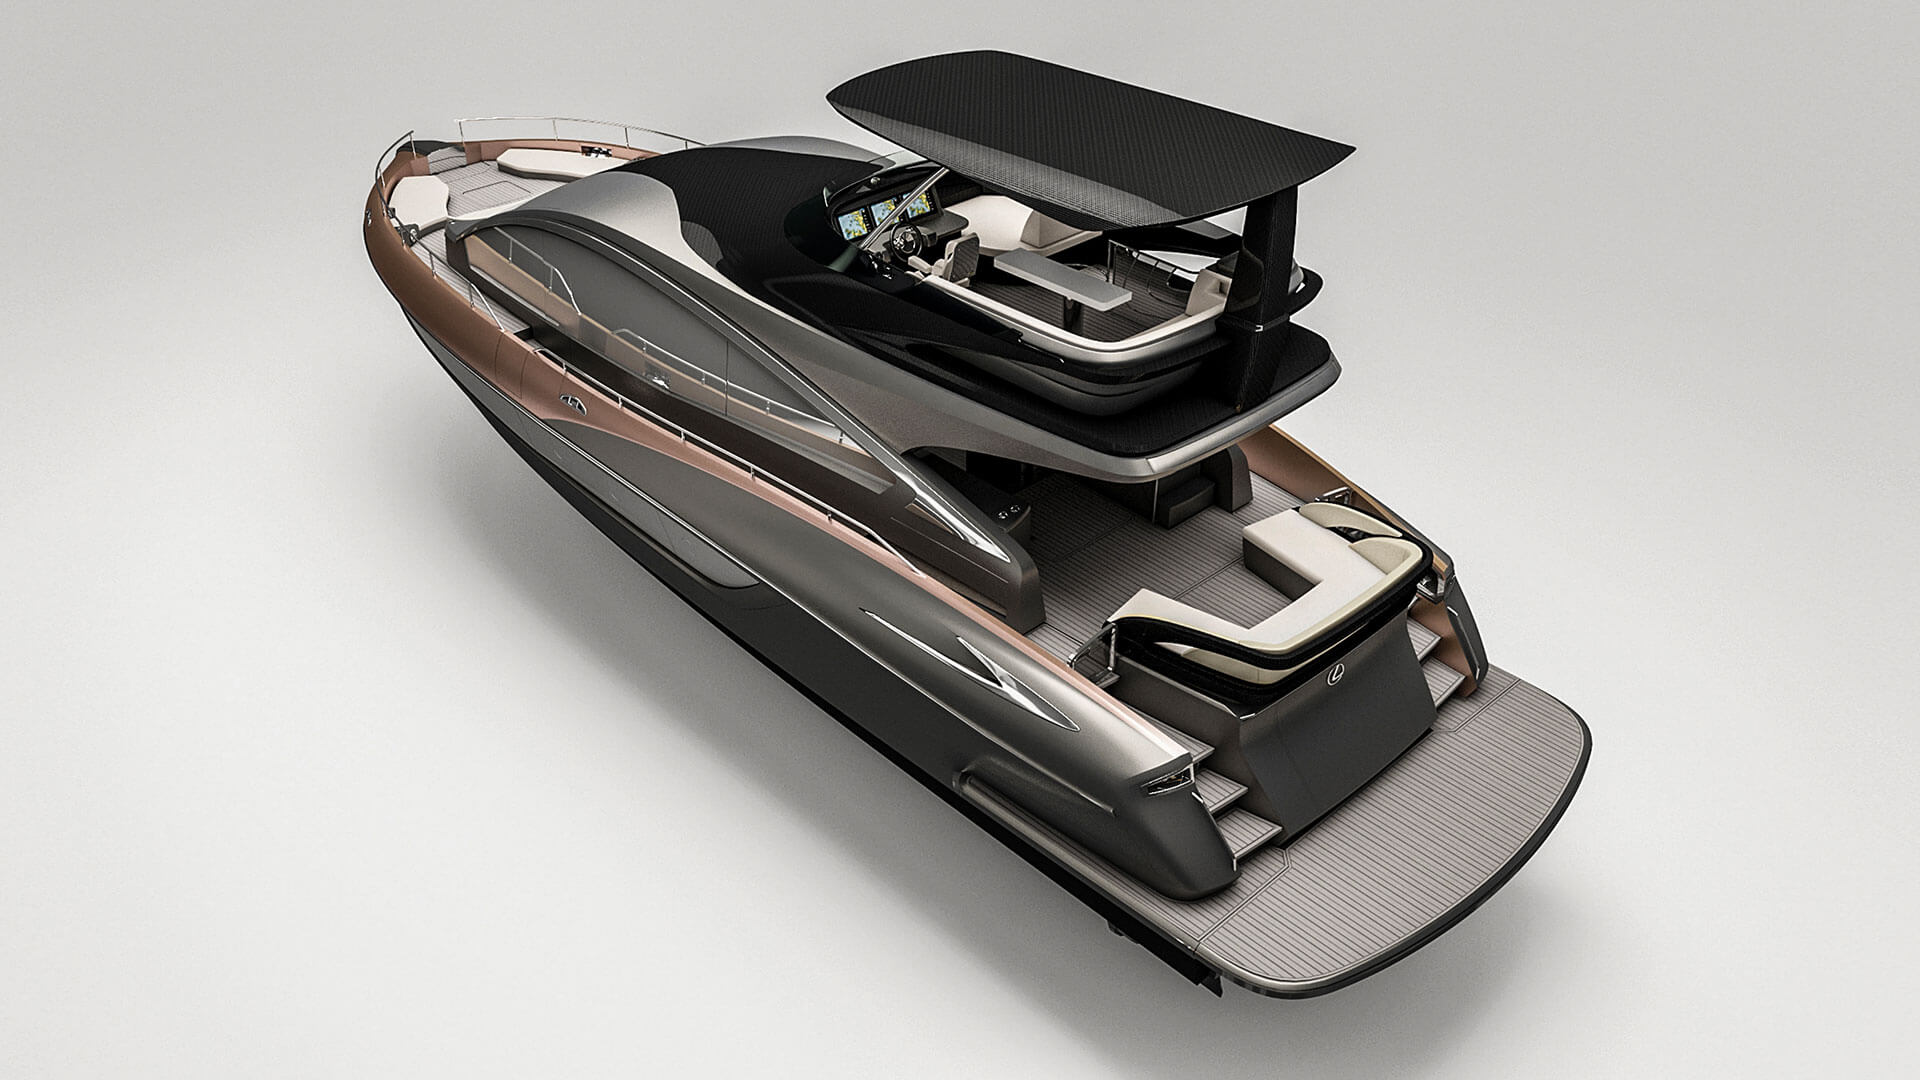 2019 lexus ly 650 luxury yacht gallery 12